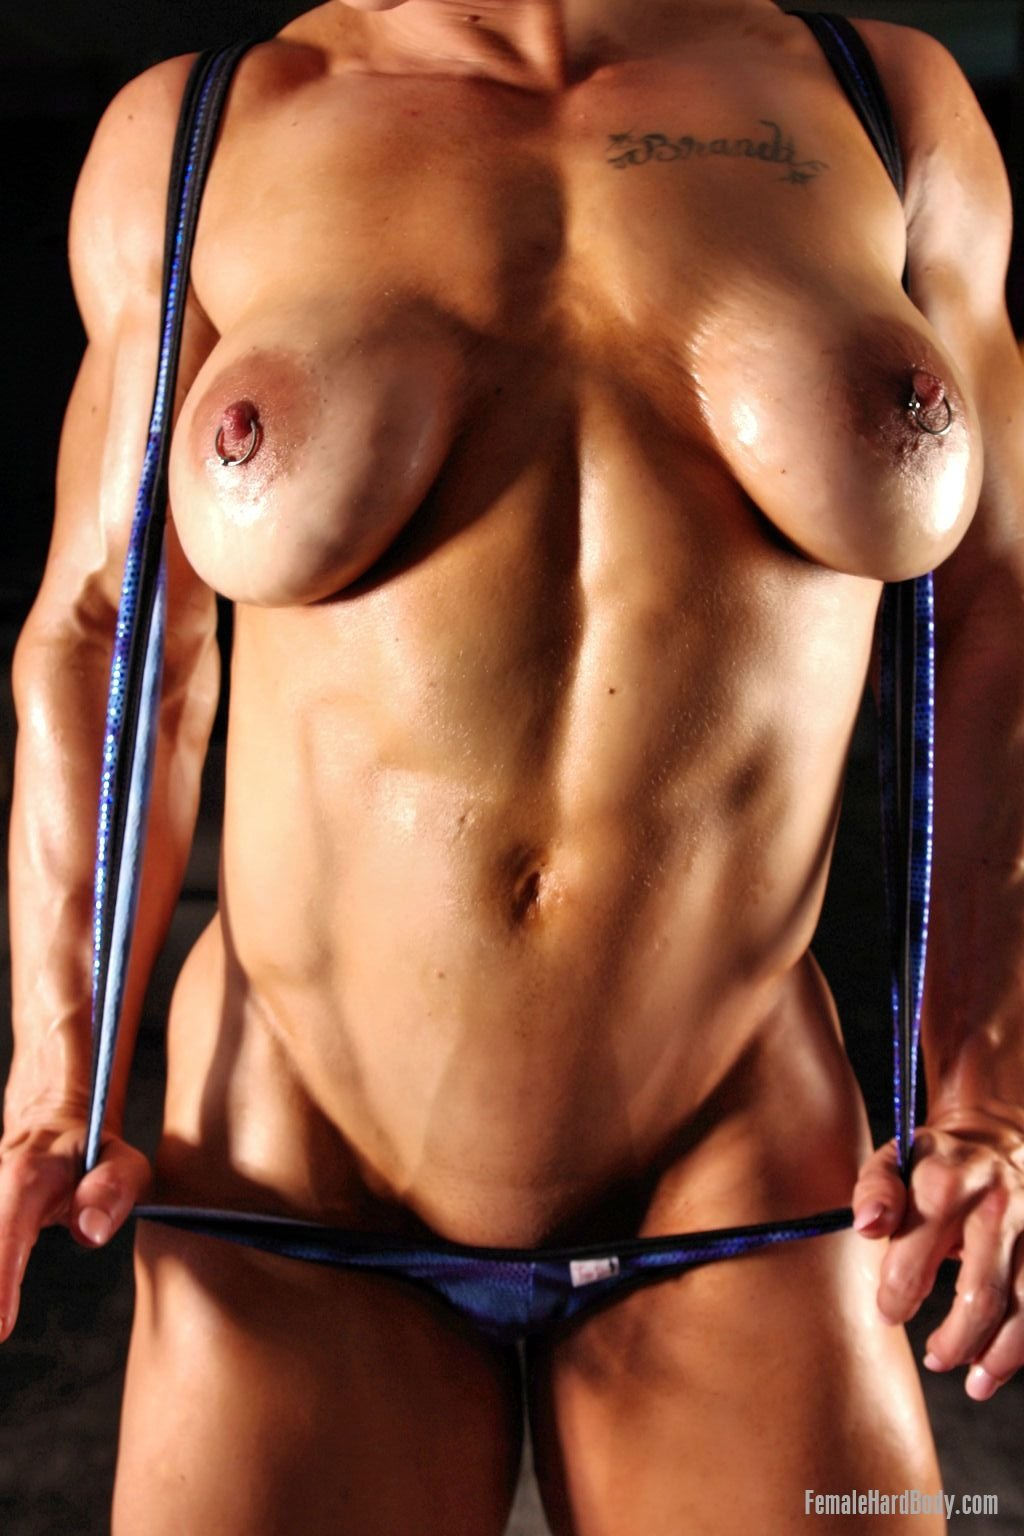 Female Bodybuilders Gallery